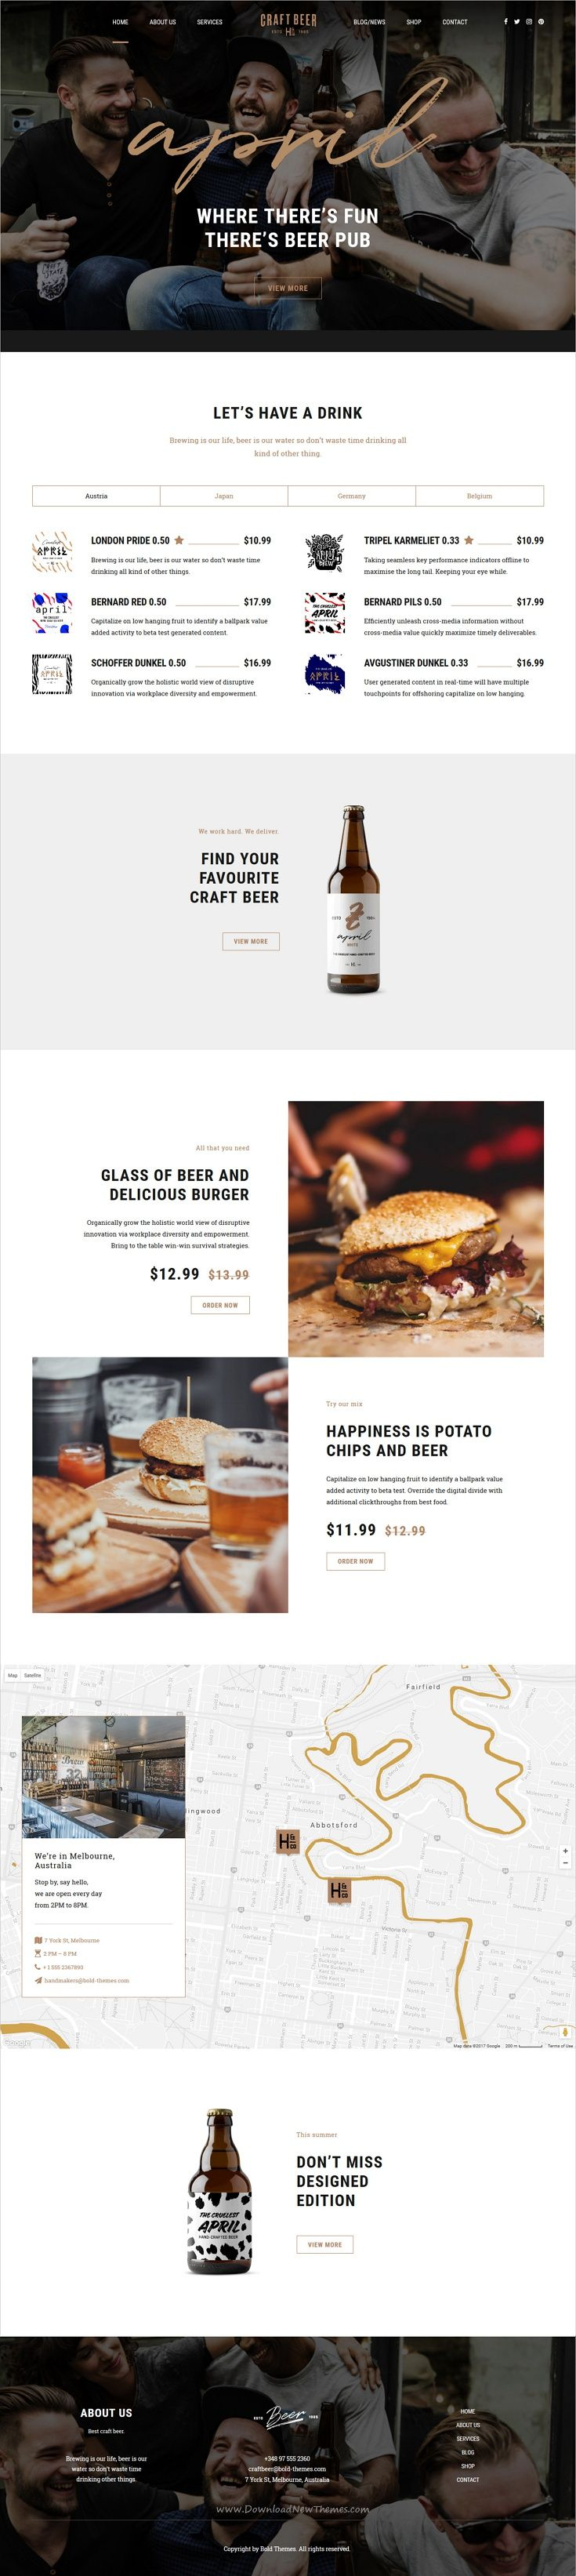 Craft Beer is clean and modern design 6in1 responsive #WordPress theme for #brewery, #beer house, #pub or liquor shop eCommerce website download now..